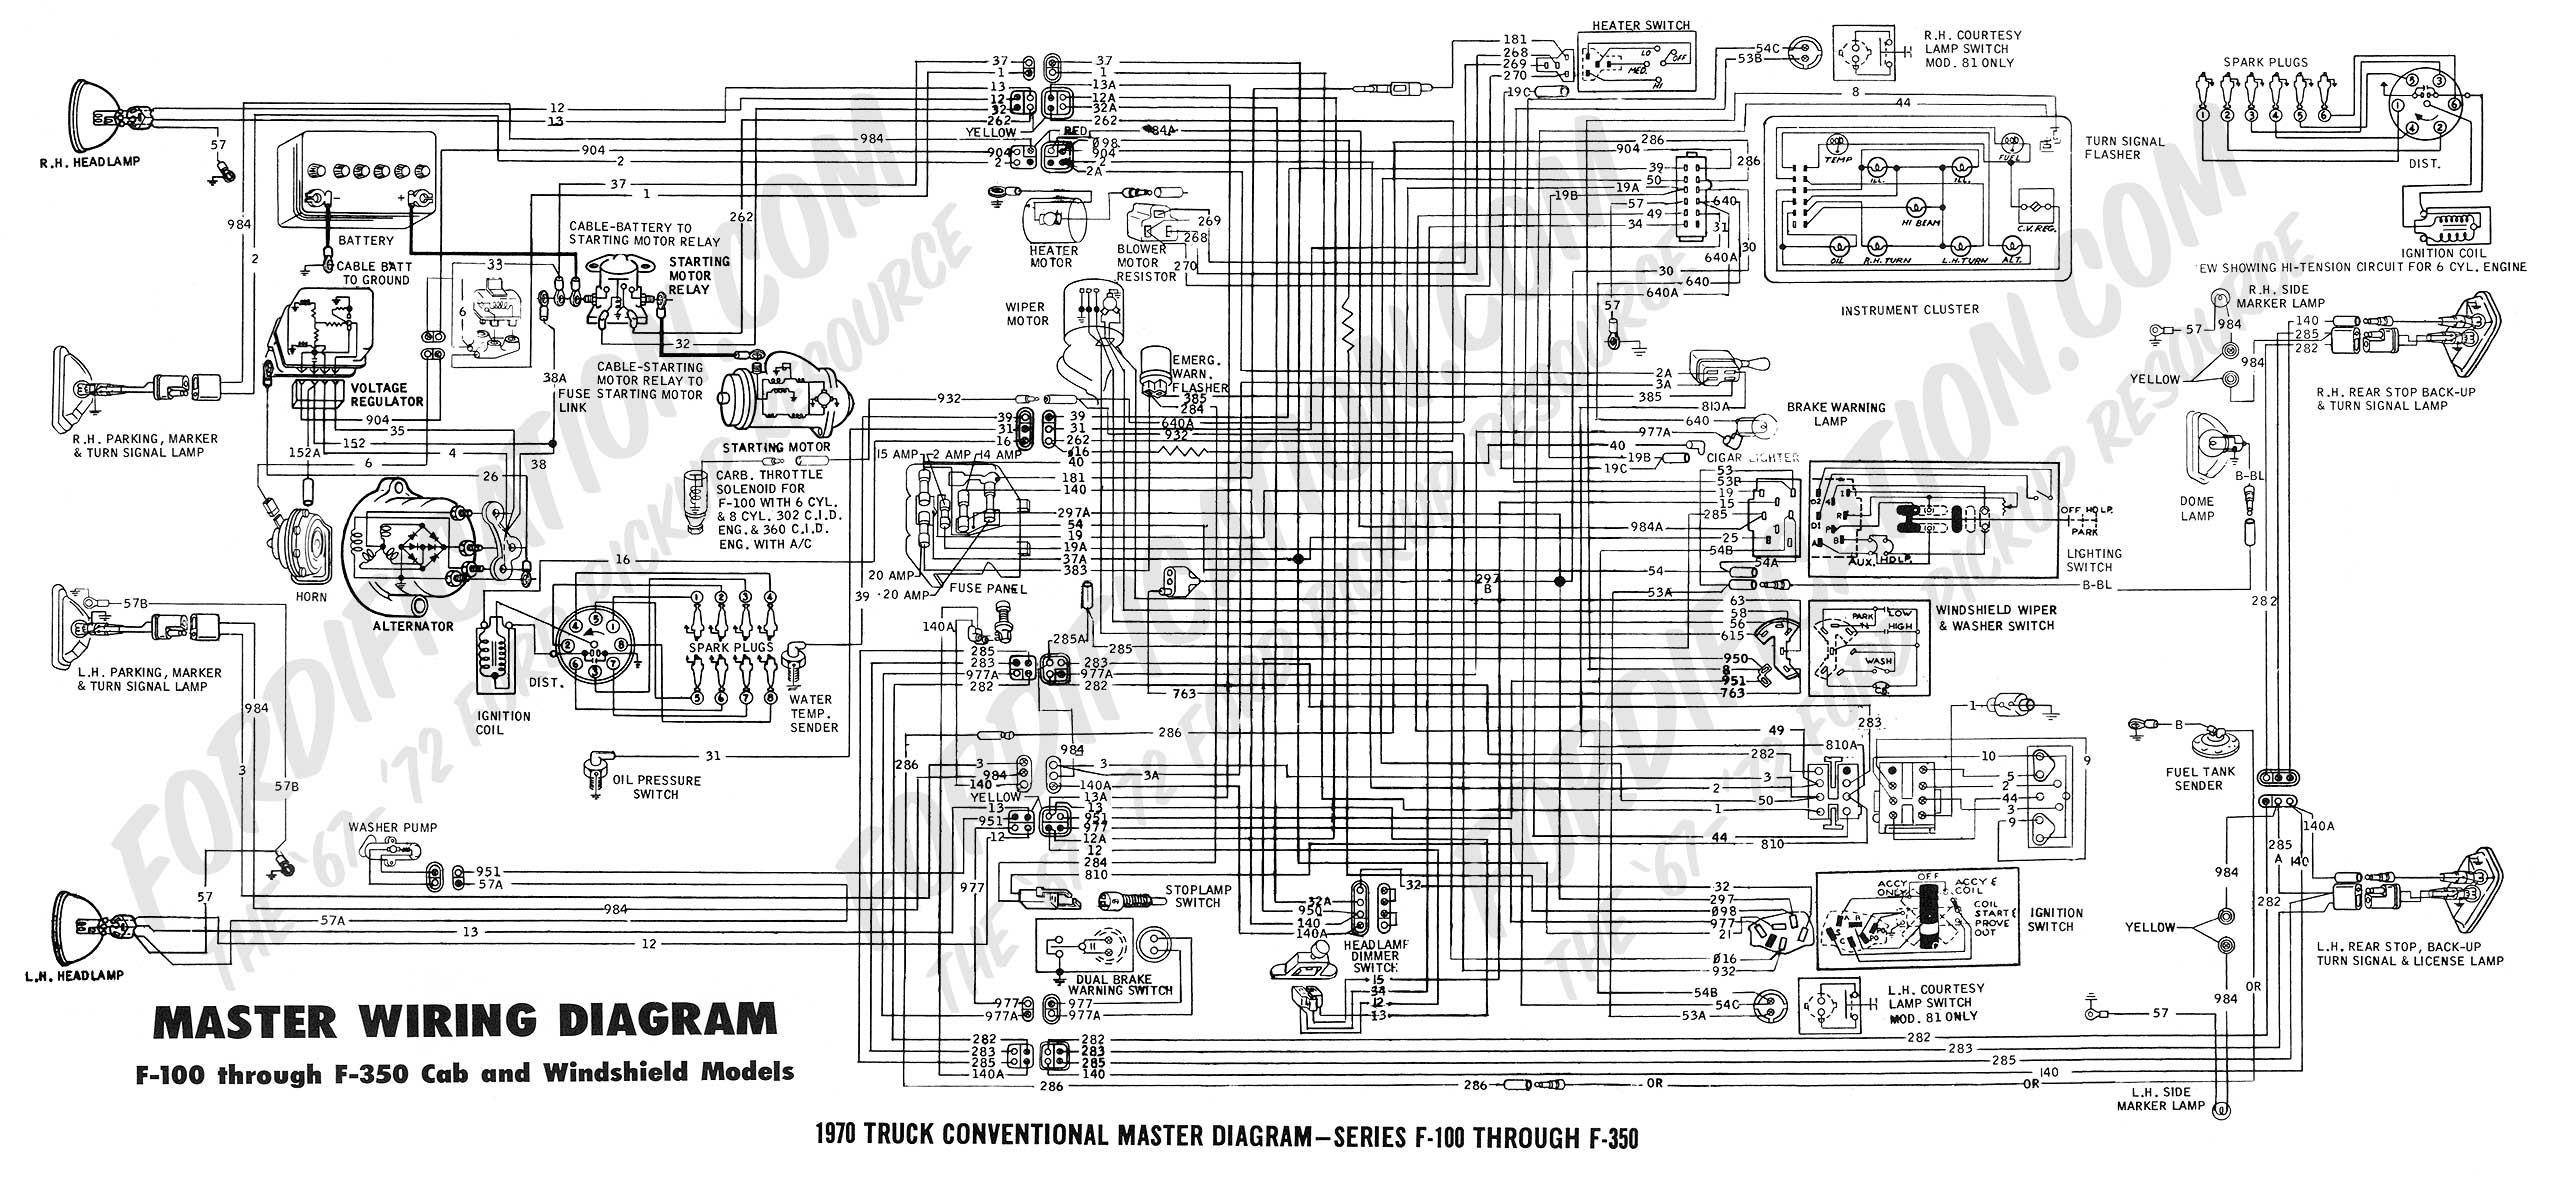 wiring diagram 70_master ford truck technical drawings and schematics section h wiring 1988 toyota pickup headlight wiring diagram at honlapkeszites.co